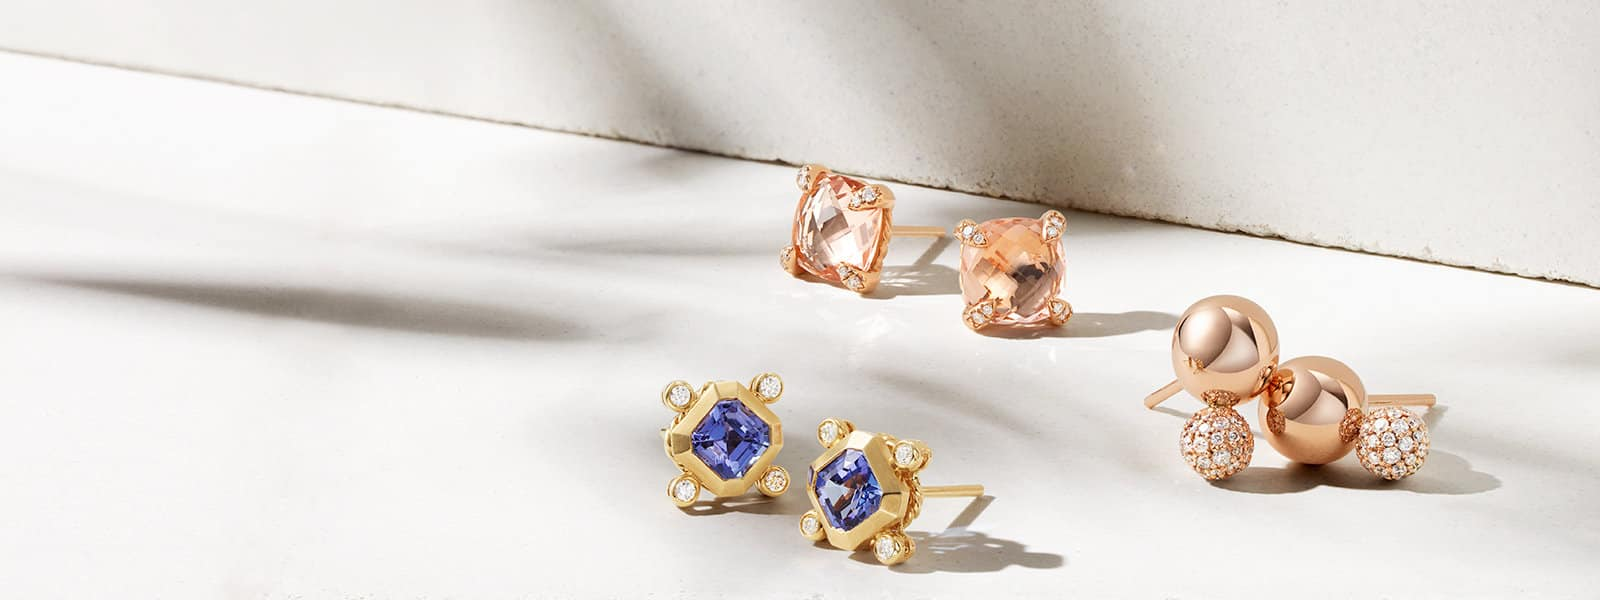 Three pairs of David Yurman Novella, Châtelaine and Solari stud earrings in 18K yellow gold or 18K rose gold with blue topaz, pavé diamonds, morganite, all scattered on a light pink textured stone with long shadows.